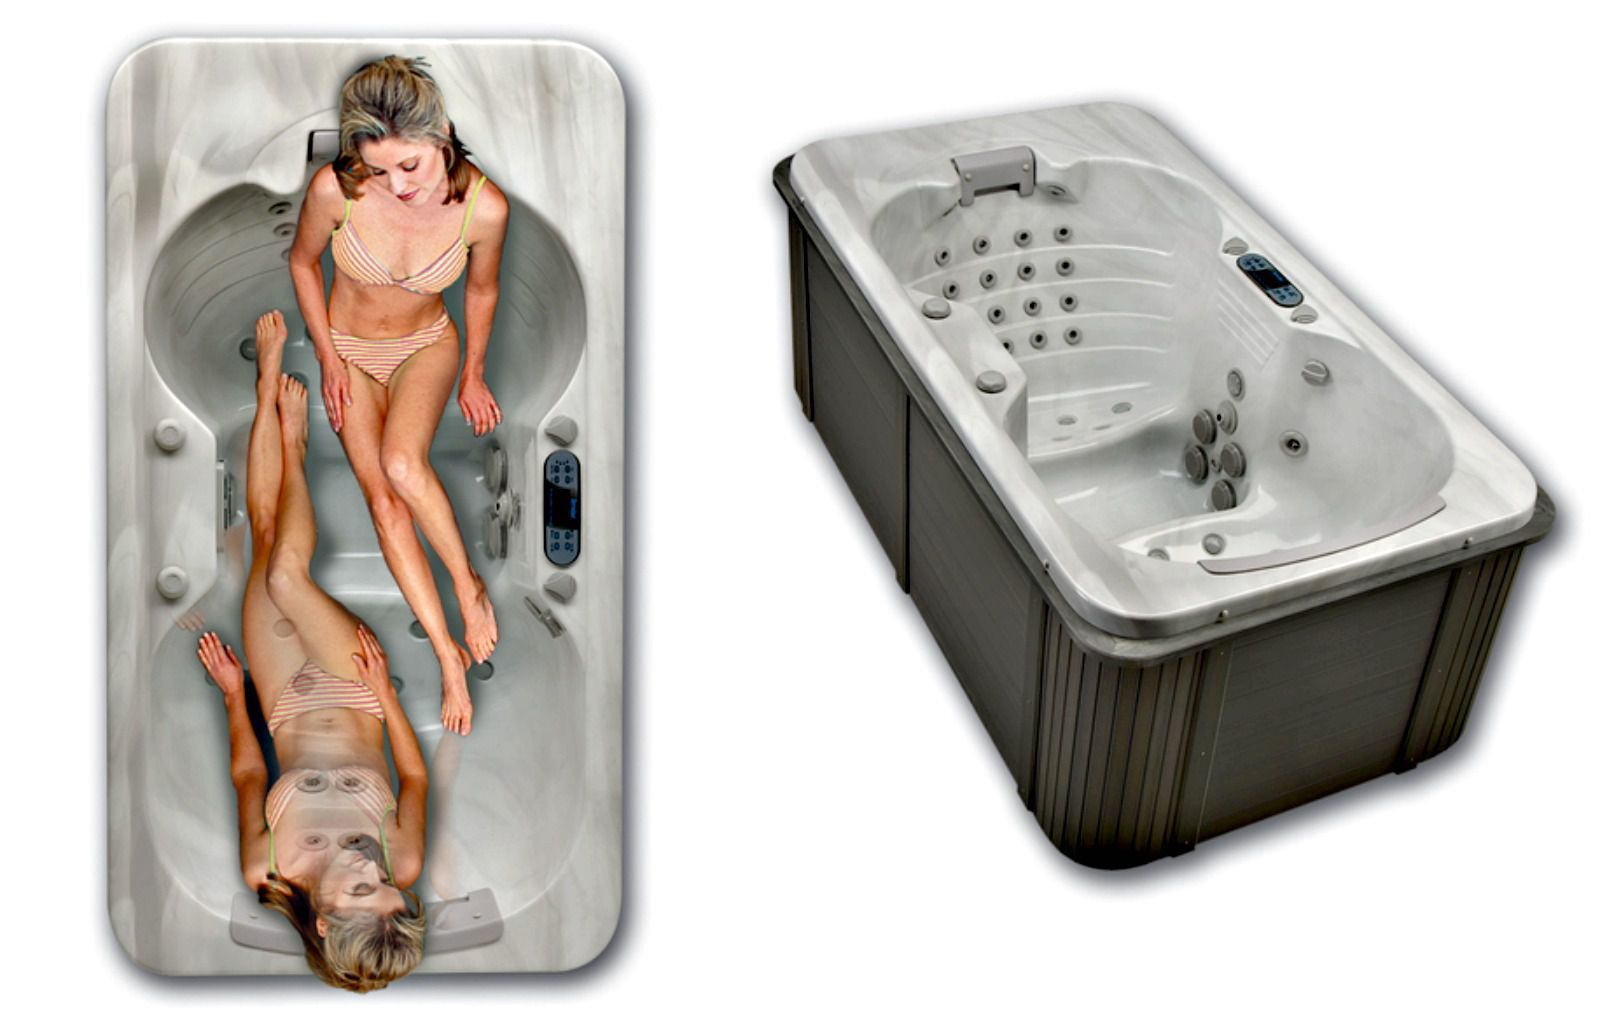 The Best Hot Tubs Designed for Two People